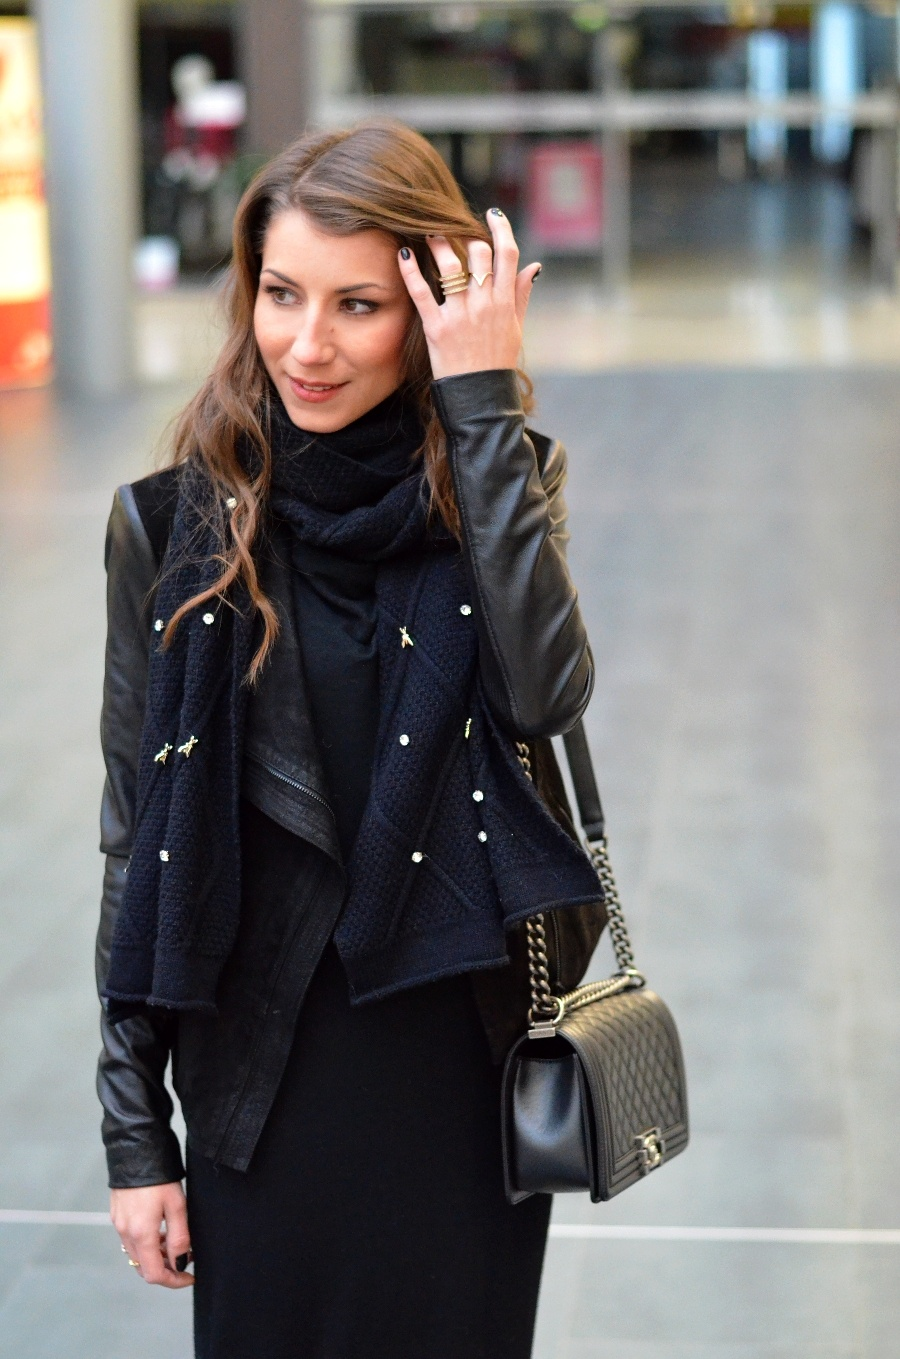 all black winter outfit maxi dress scraf and eatherjacket boots